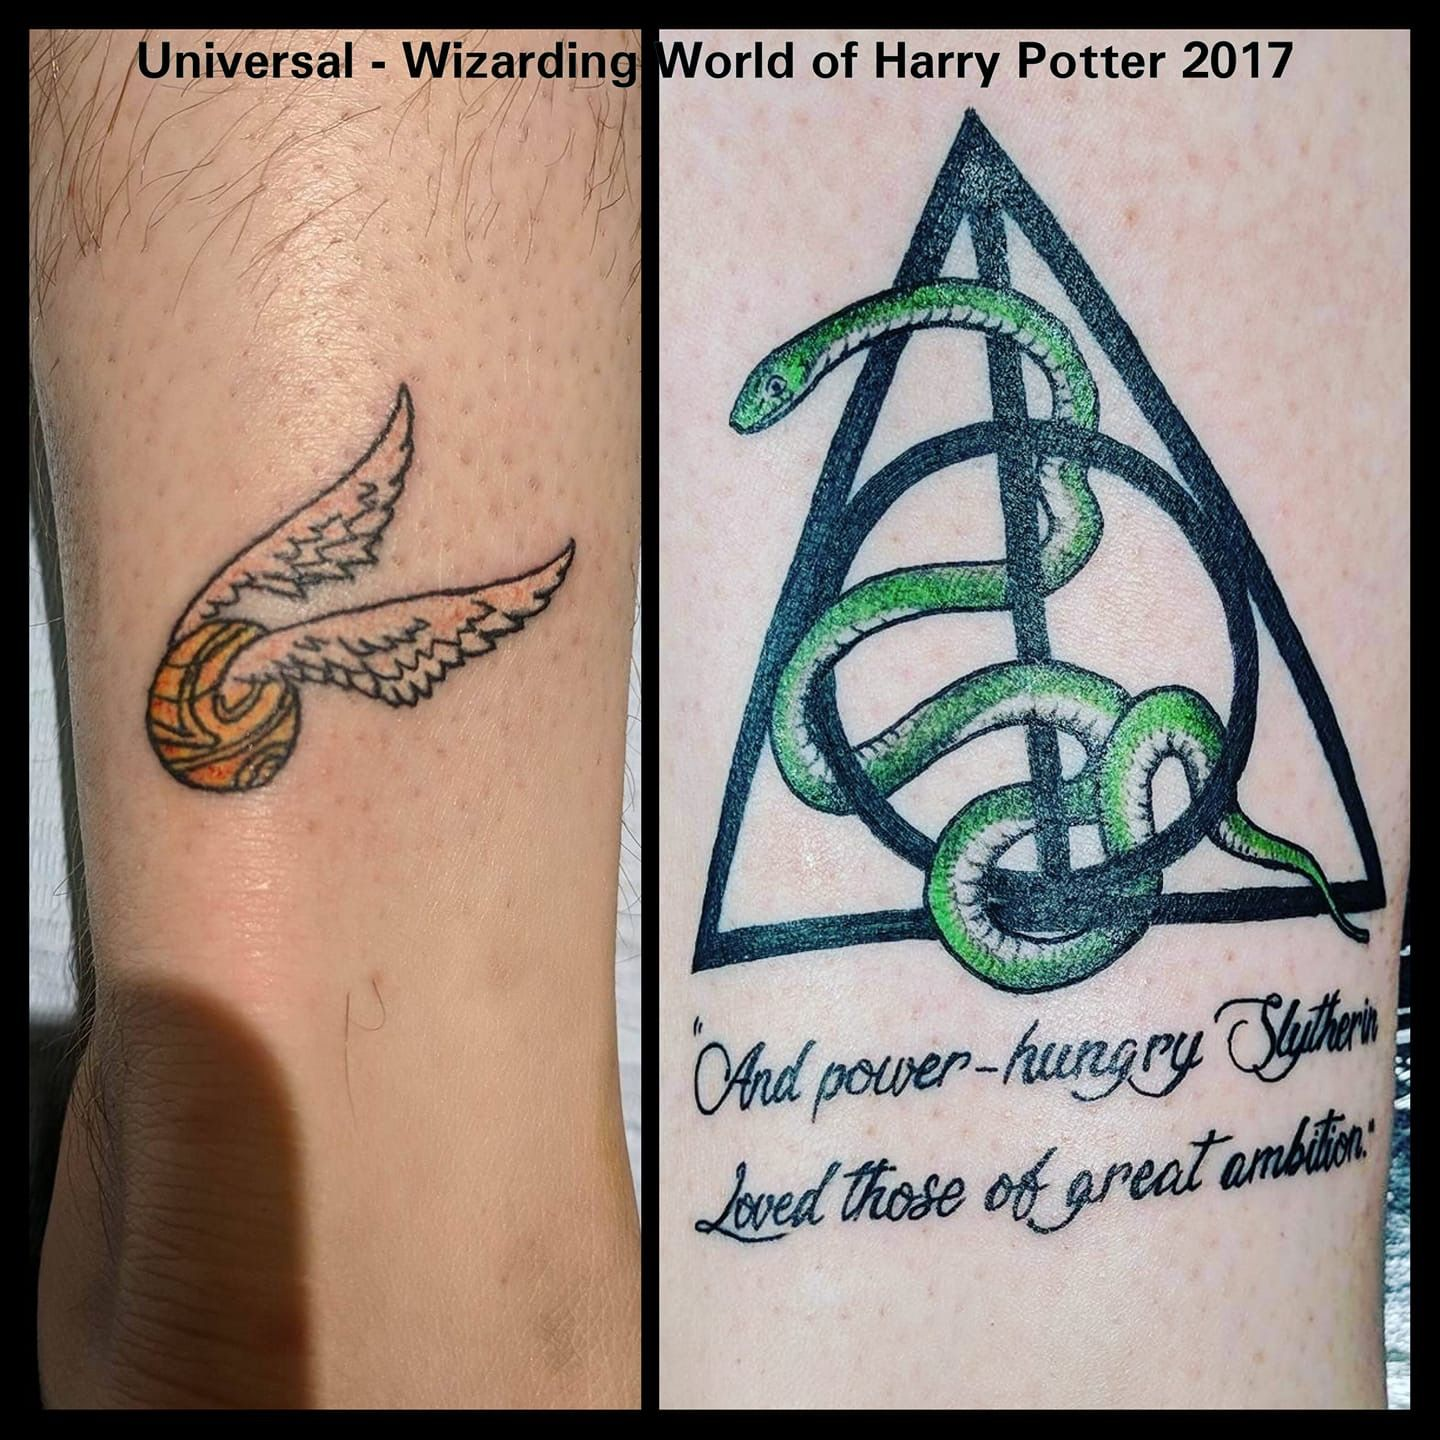 Harry Potter Tattoo Tattoo Golden Snitch Slytherin Hogwarts Snake Deathly Hollows Harry Potter Tattoo Harry Potter Symbols Harry Potter Book Quotes